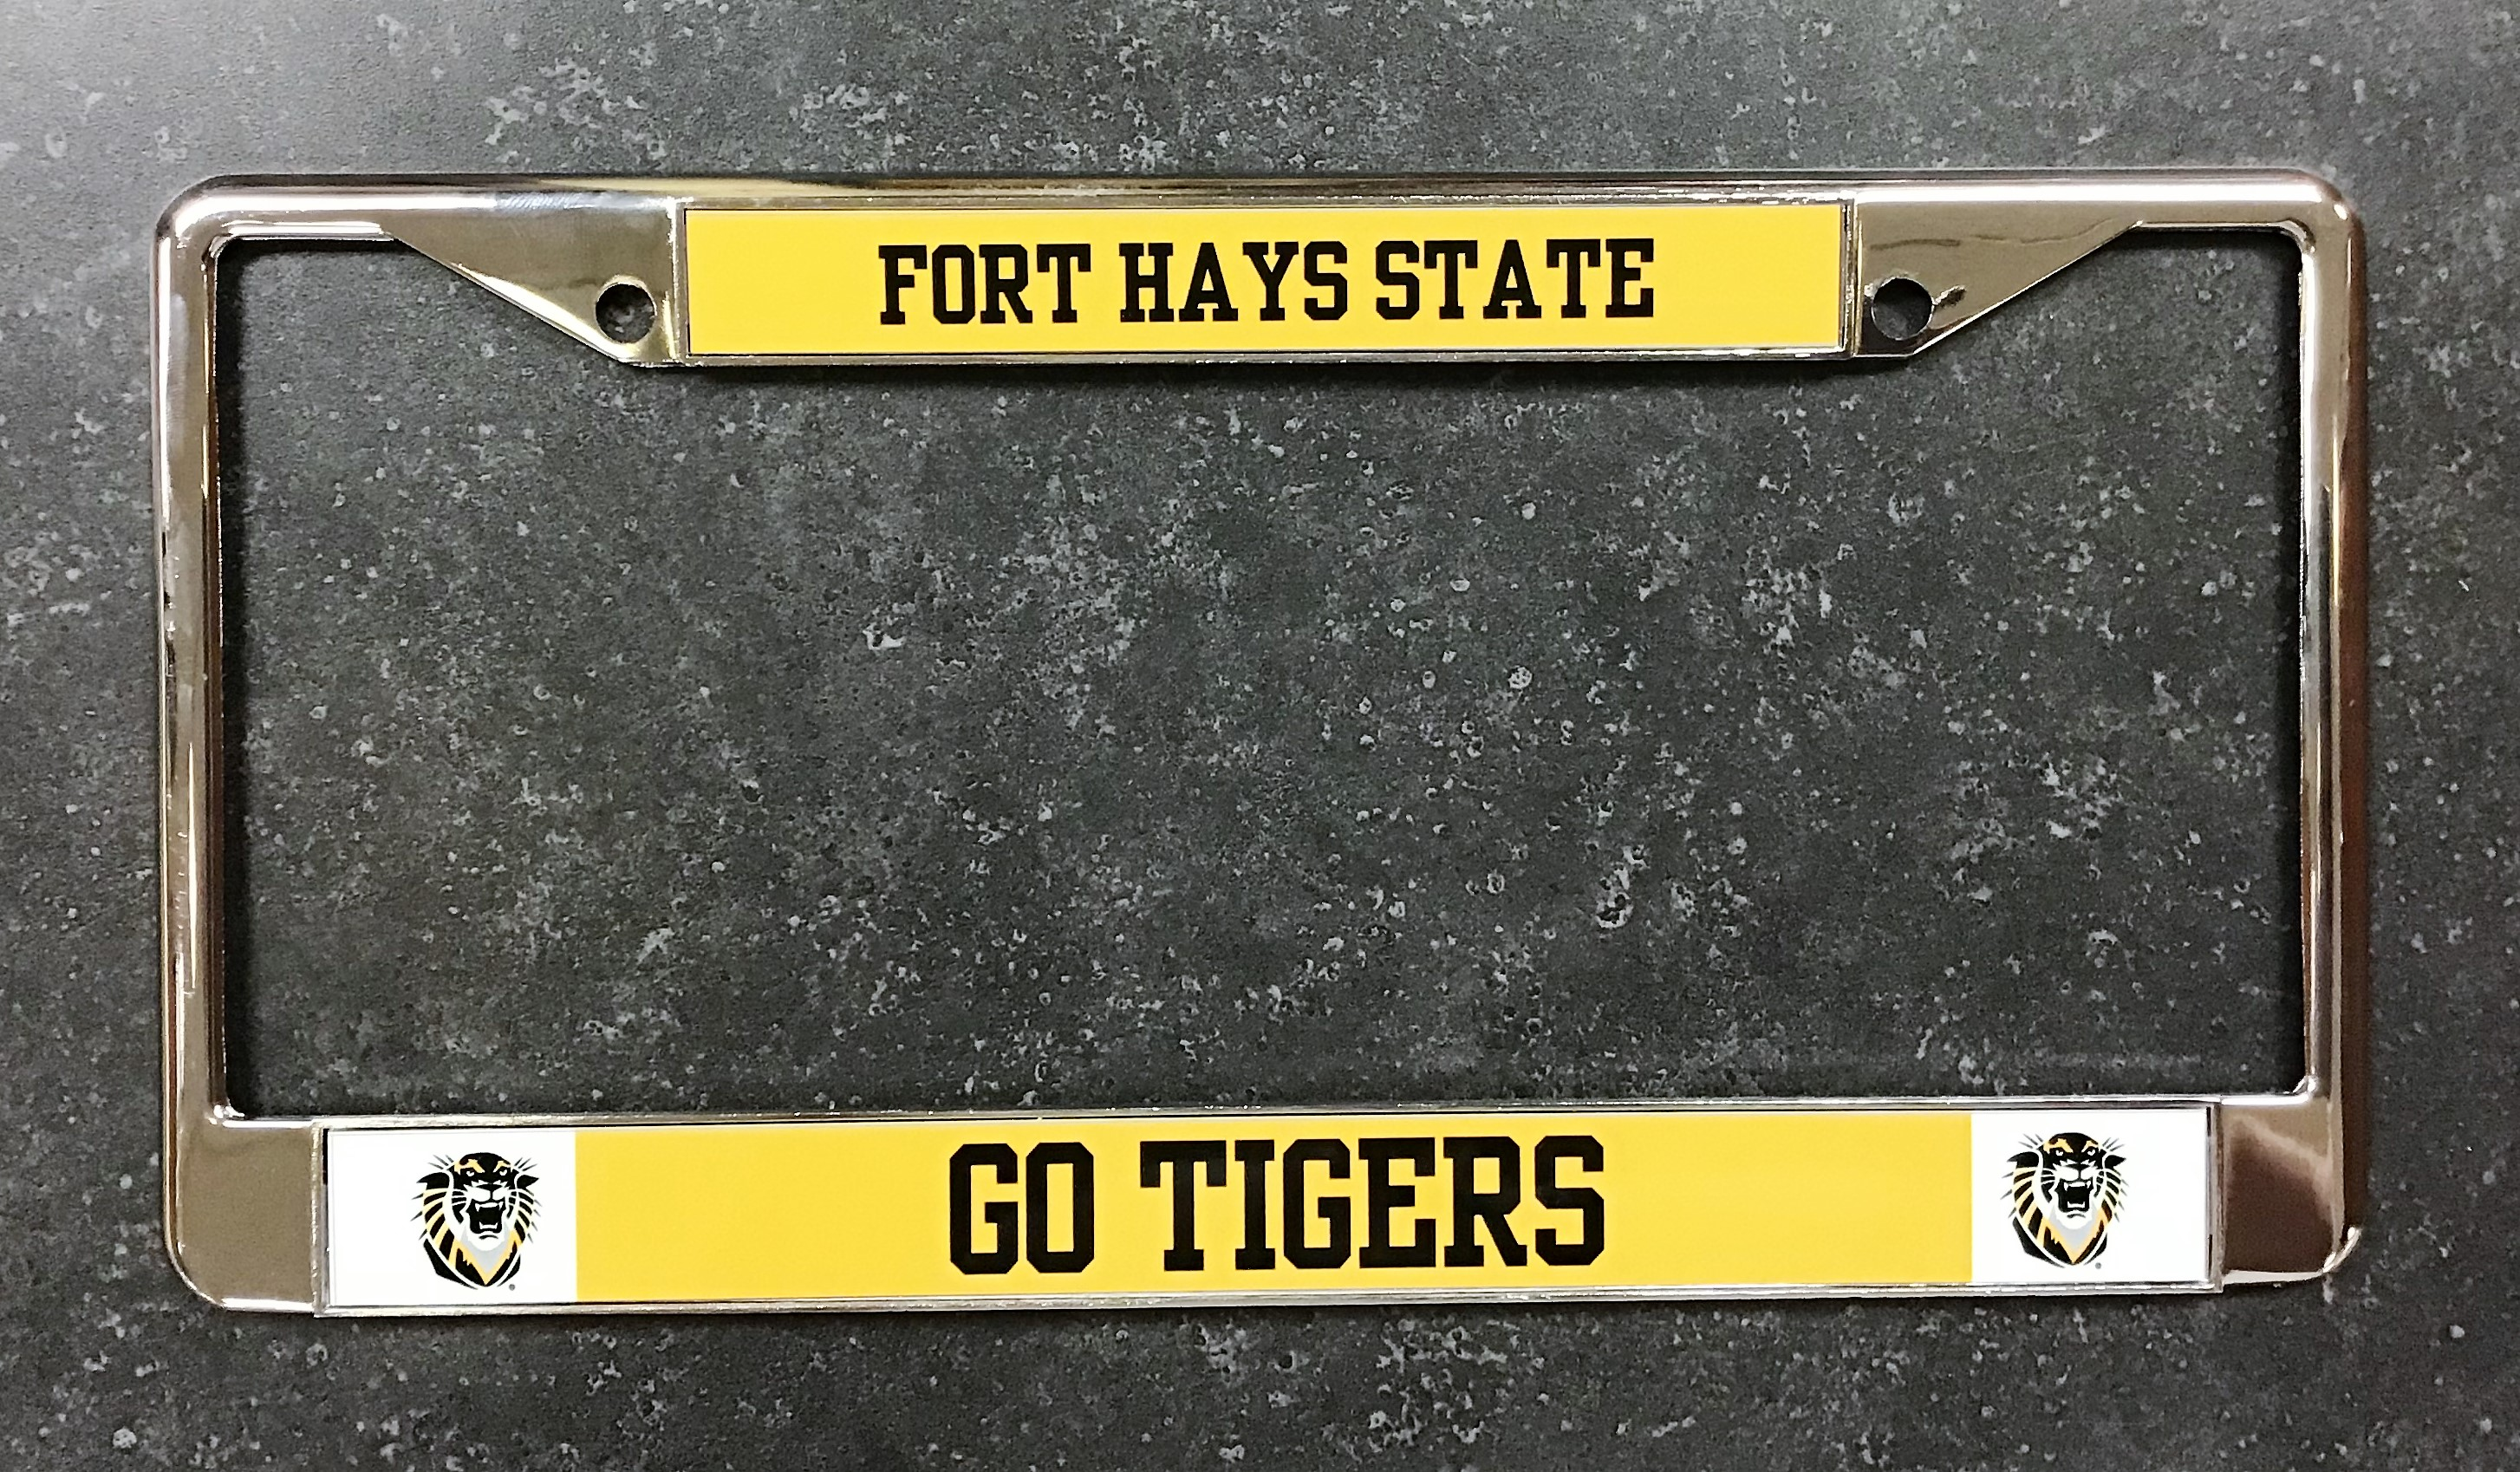 Image for the License Plate Frame Chrome with Black & Gold product